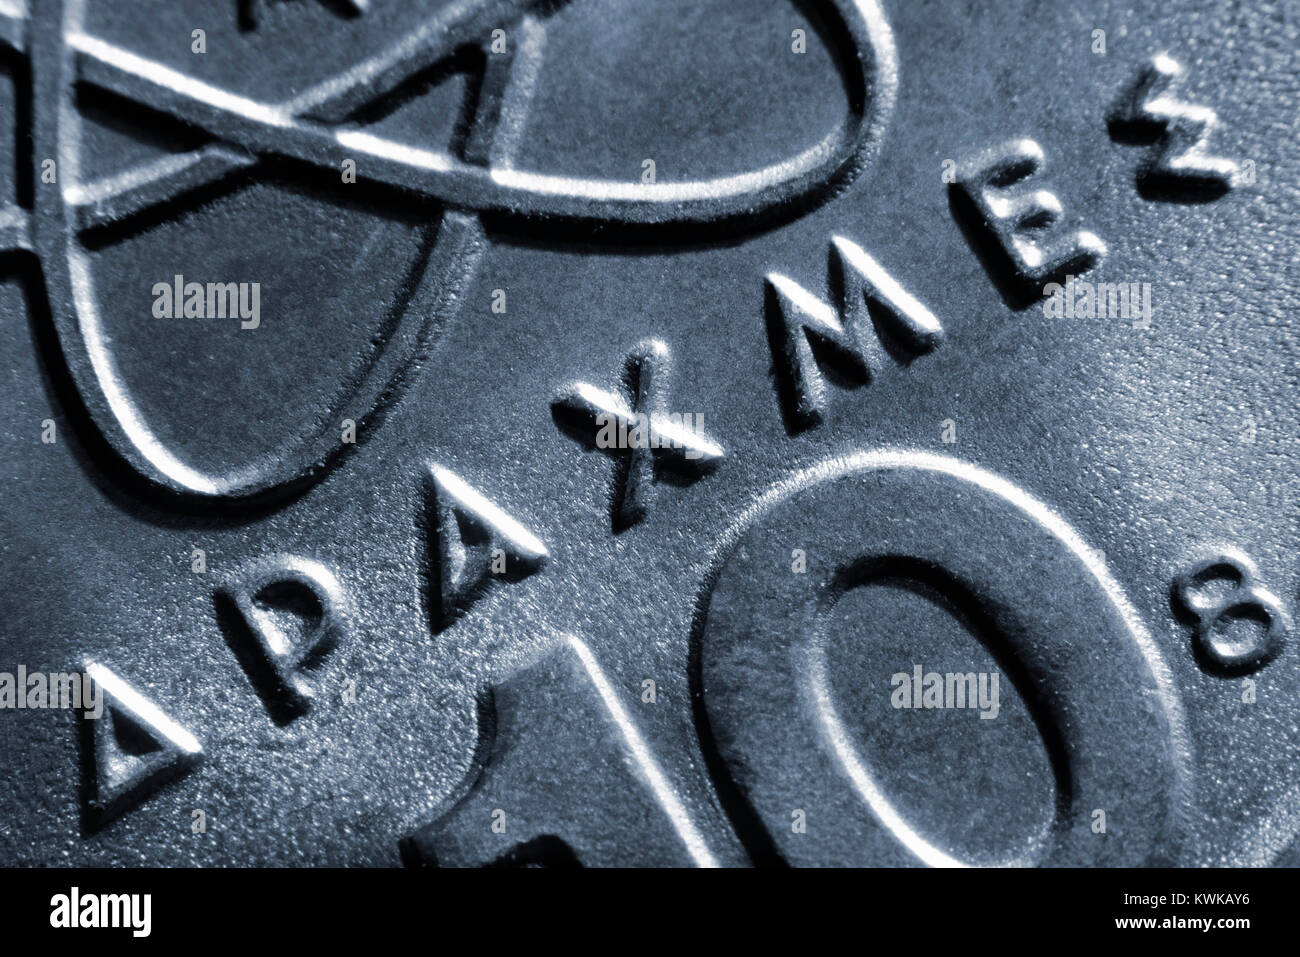 Greek drachm coin, Griechische Drachme-M?nze Stock Photo